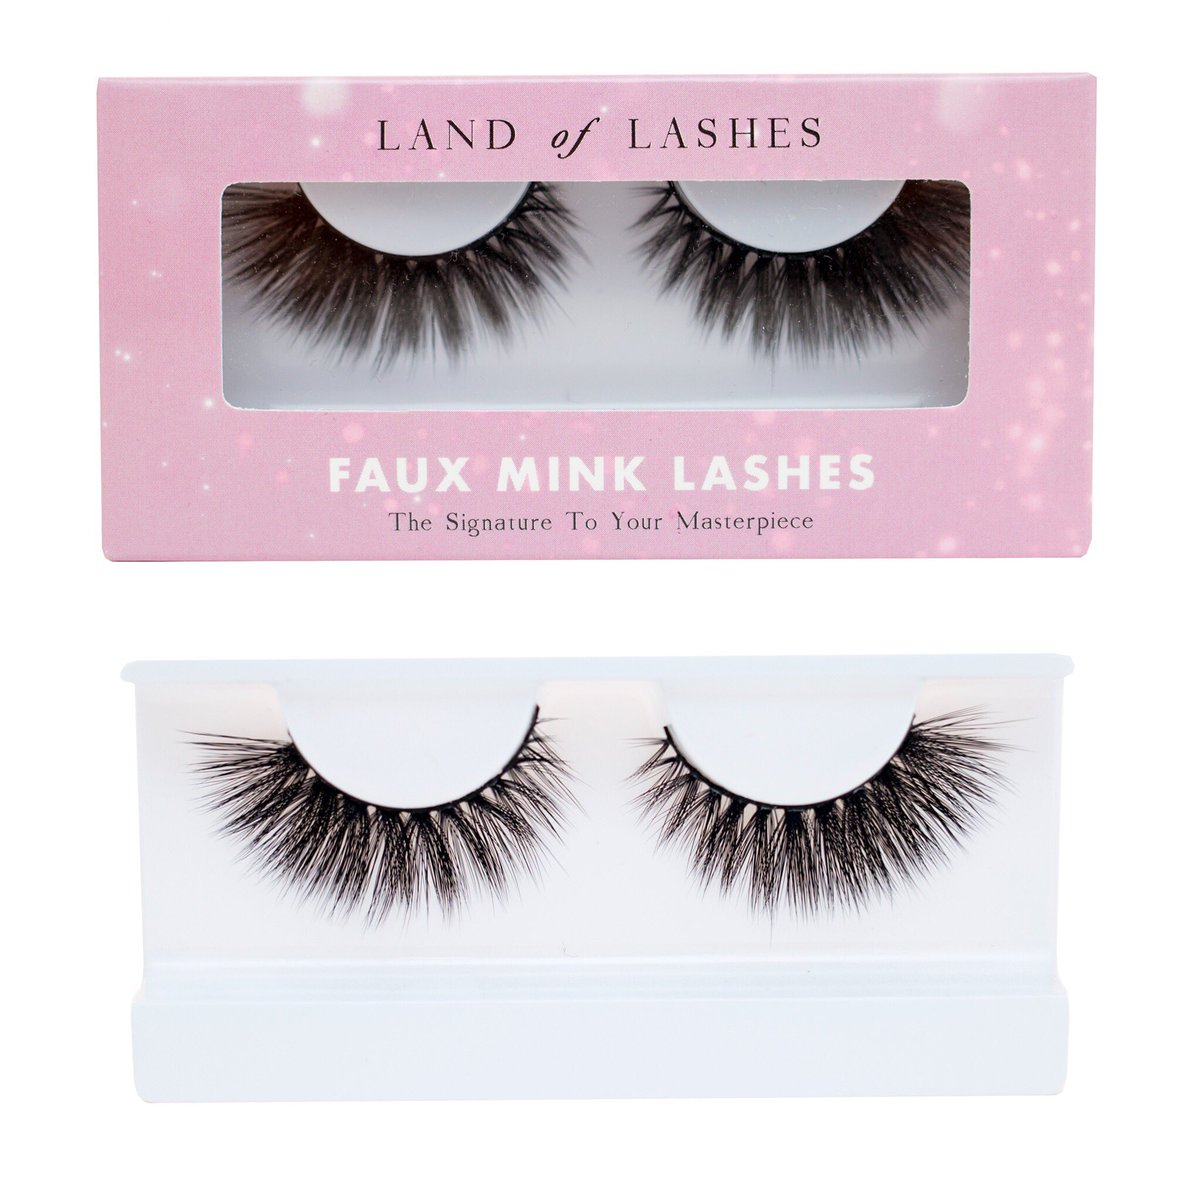 814fe53bde2 LAND OF LASHES ™ on Twitter: